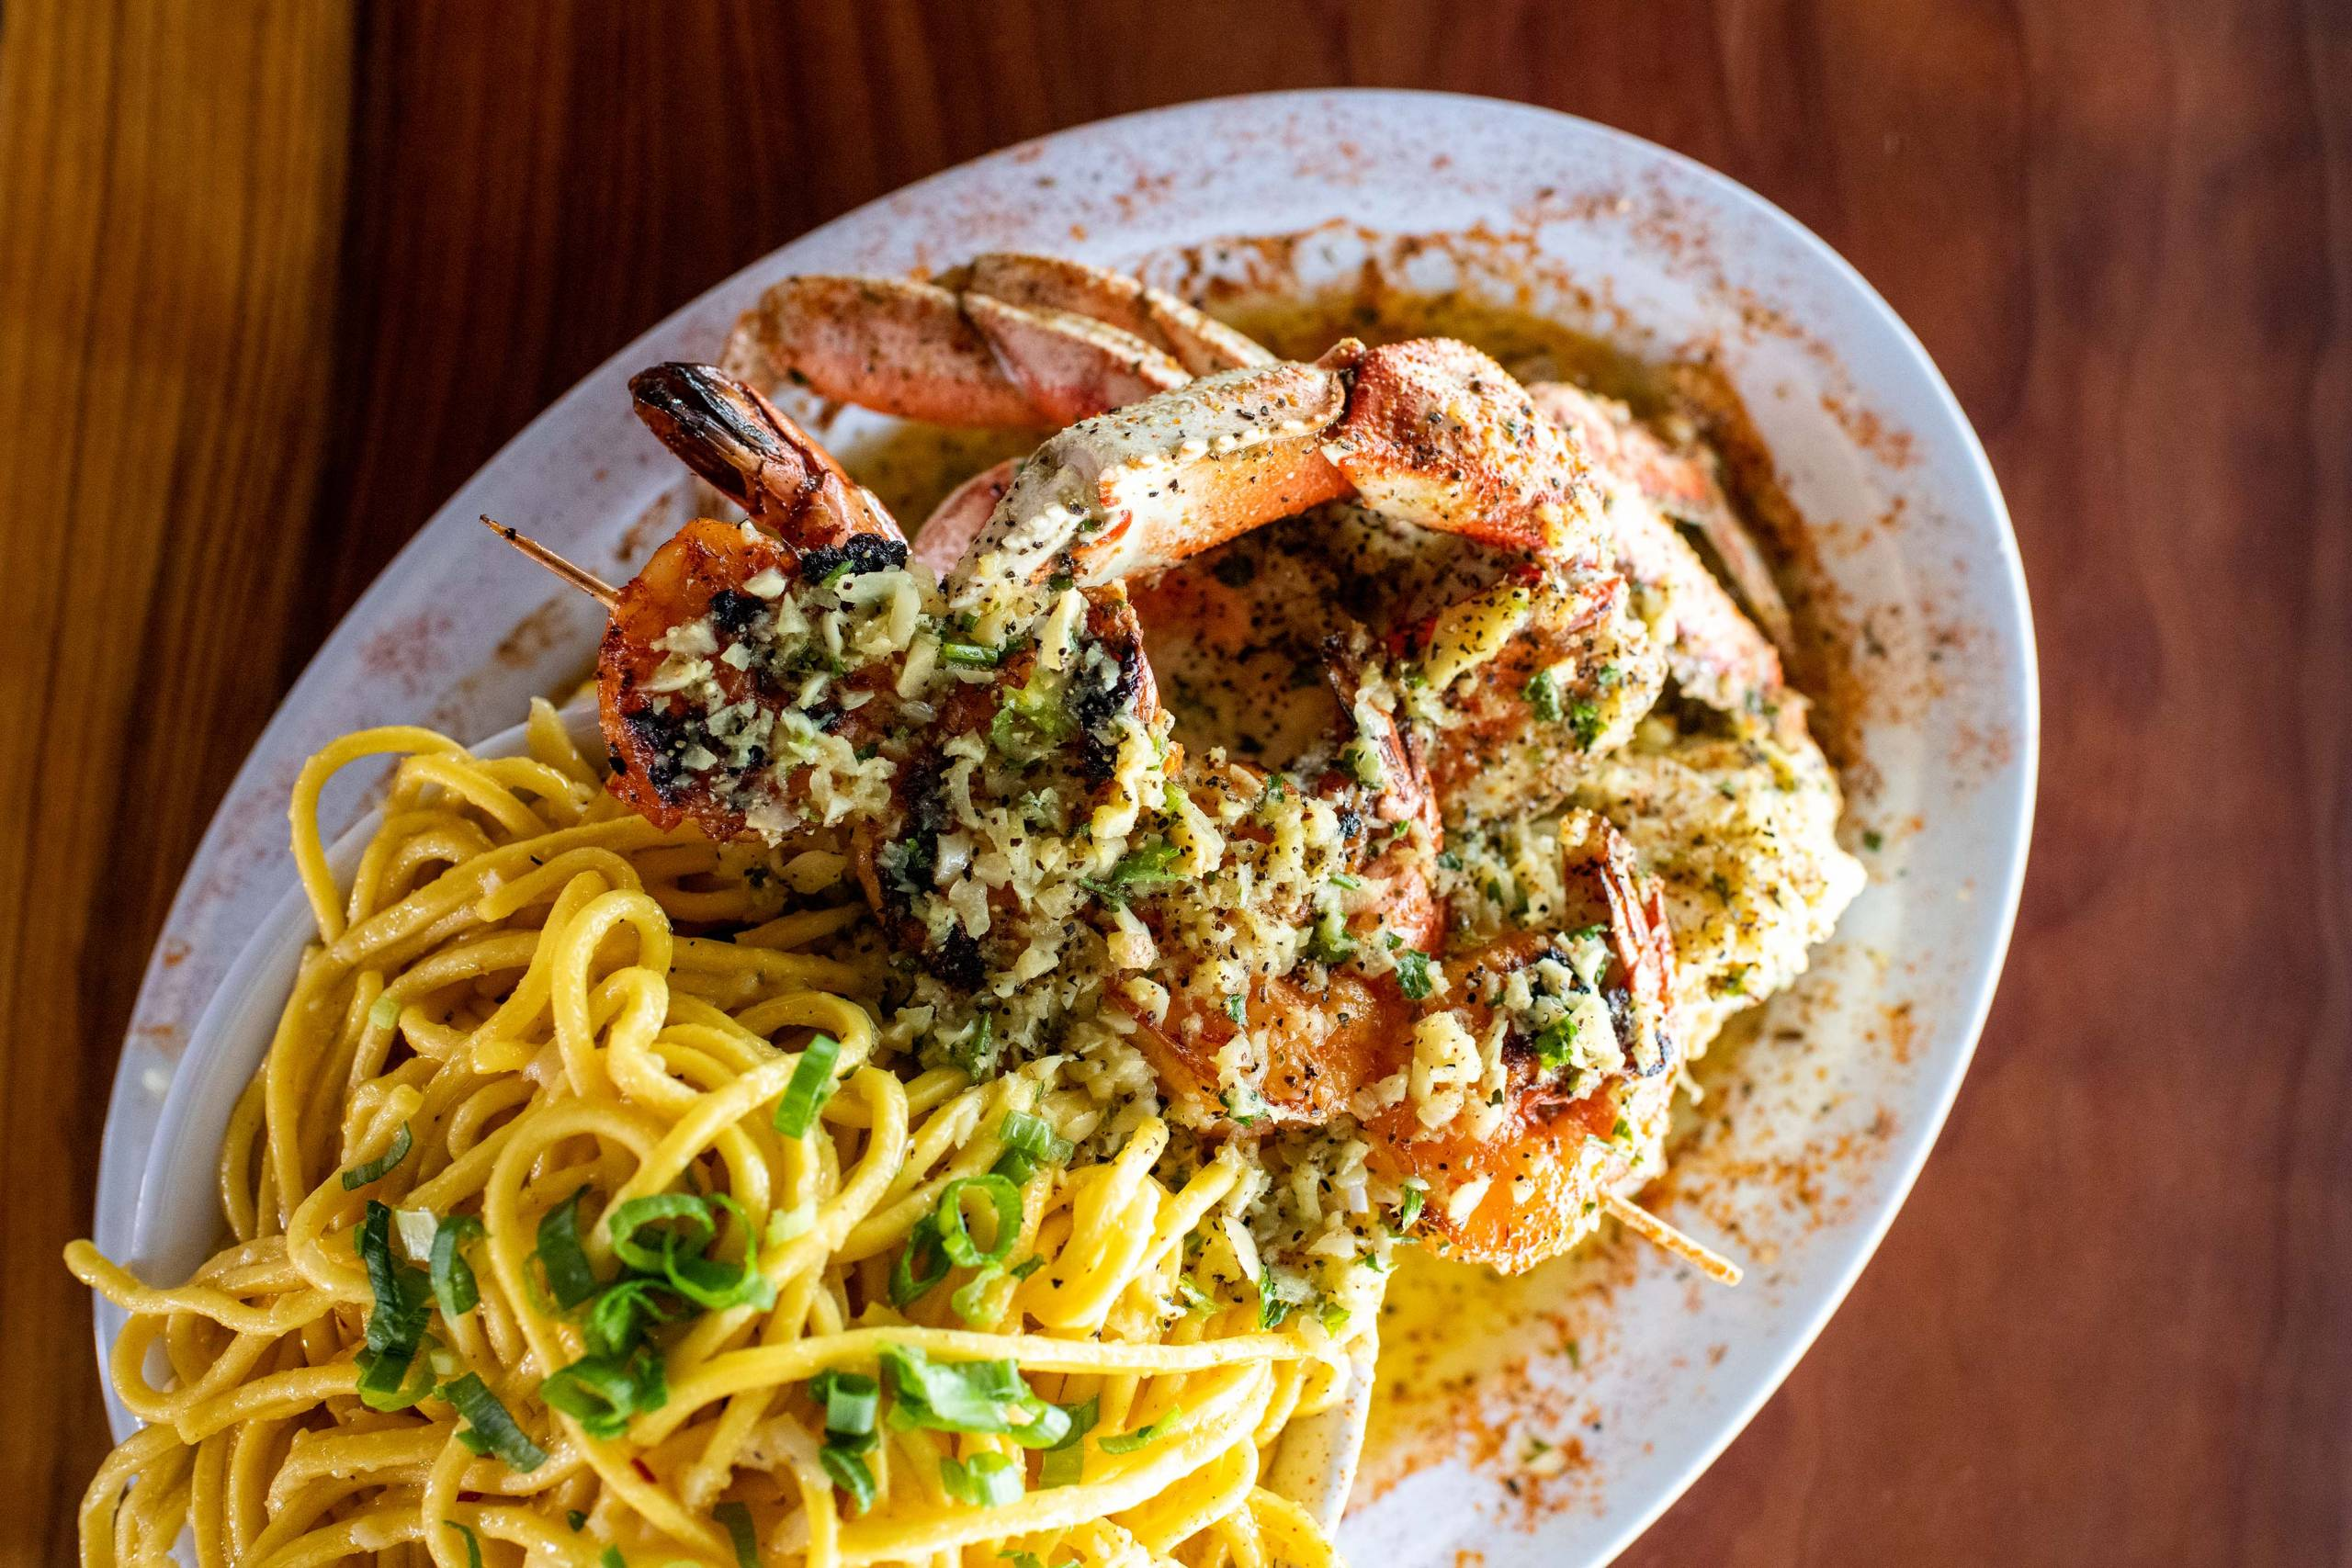 Overhead view of a plate of garlic noodles and roast crab.